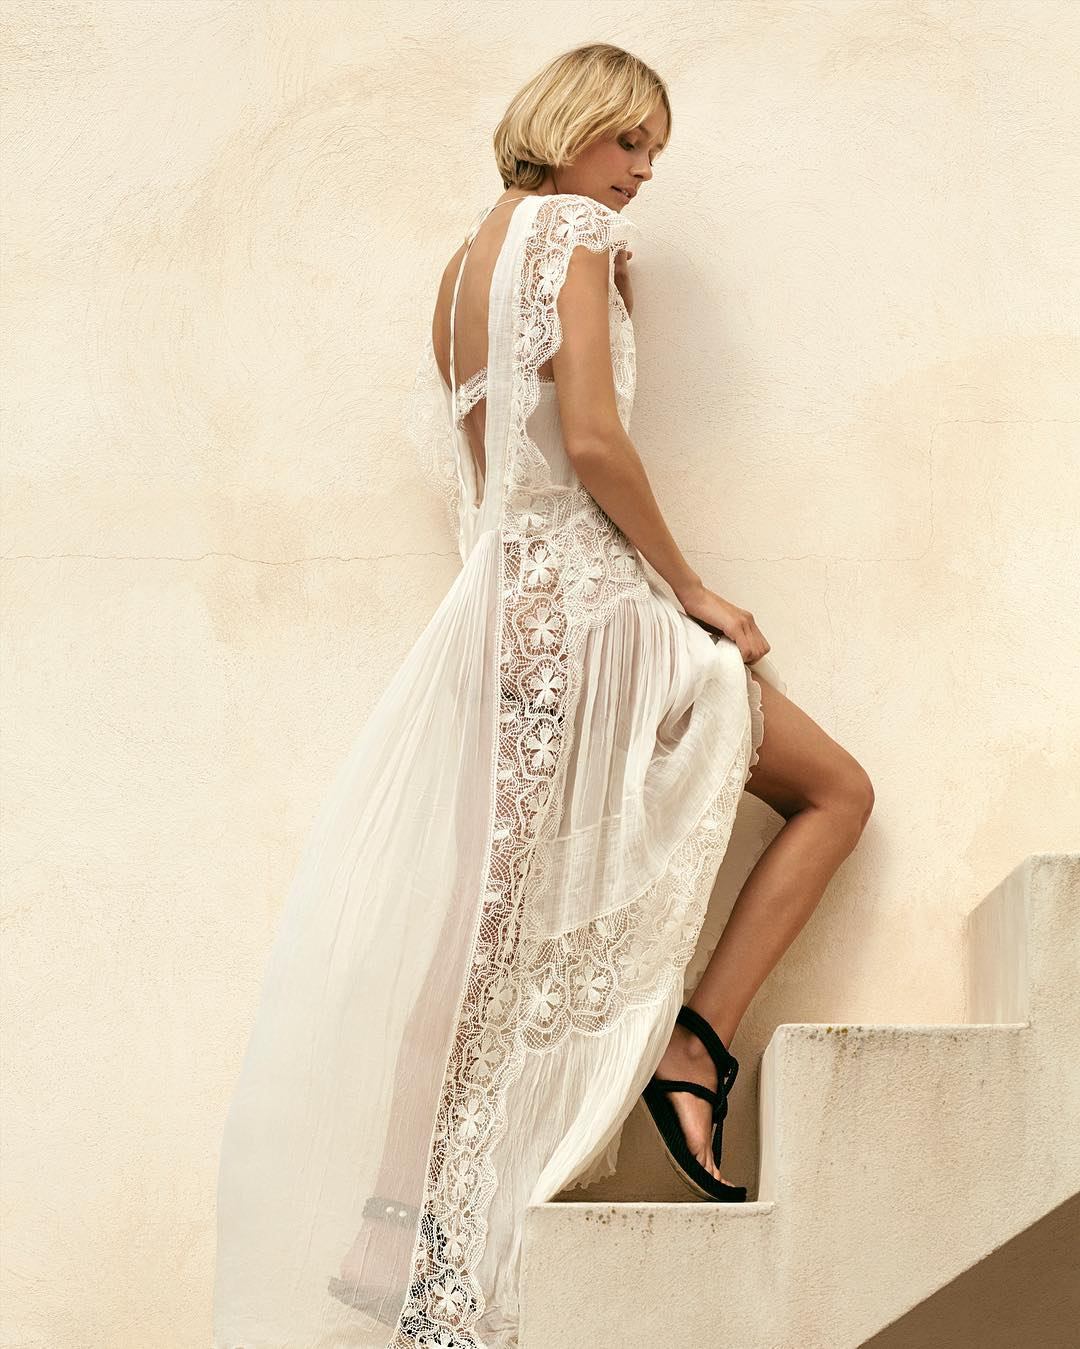 The dreamiest of dresses with surfy sandals in my storyhellip